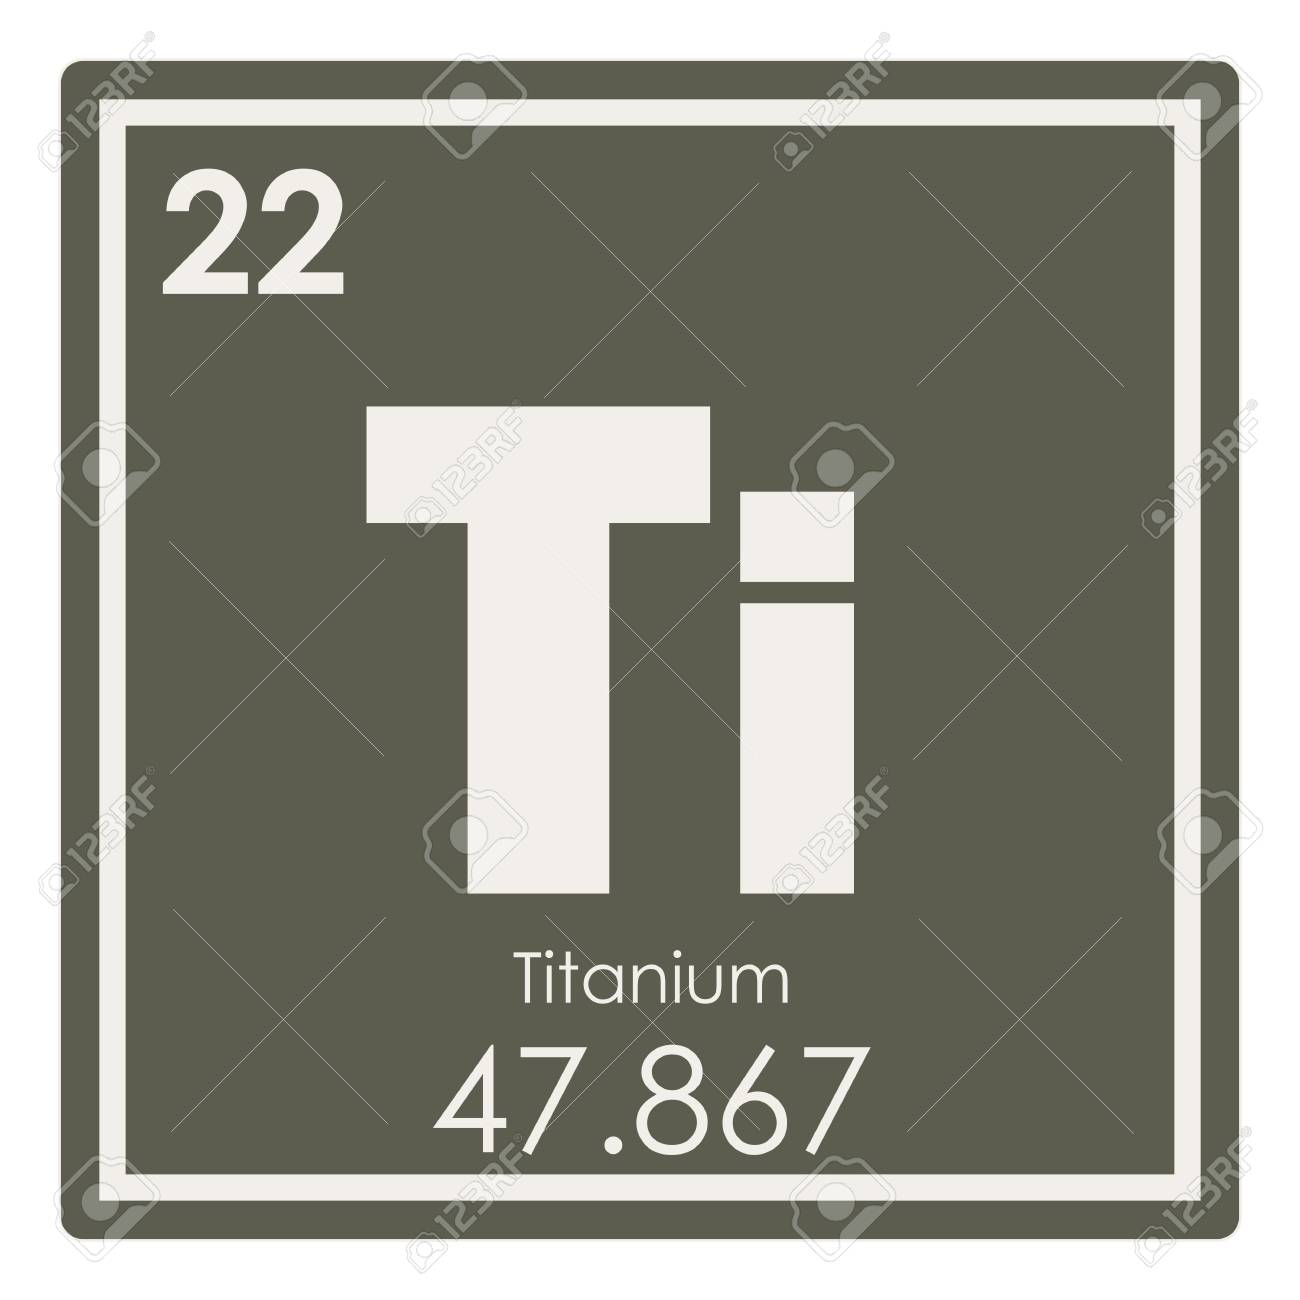 Titanium chemical element periodic table science symbol stock photo stock photo titanium chemical element periodic table science symbol urtaz Image collections